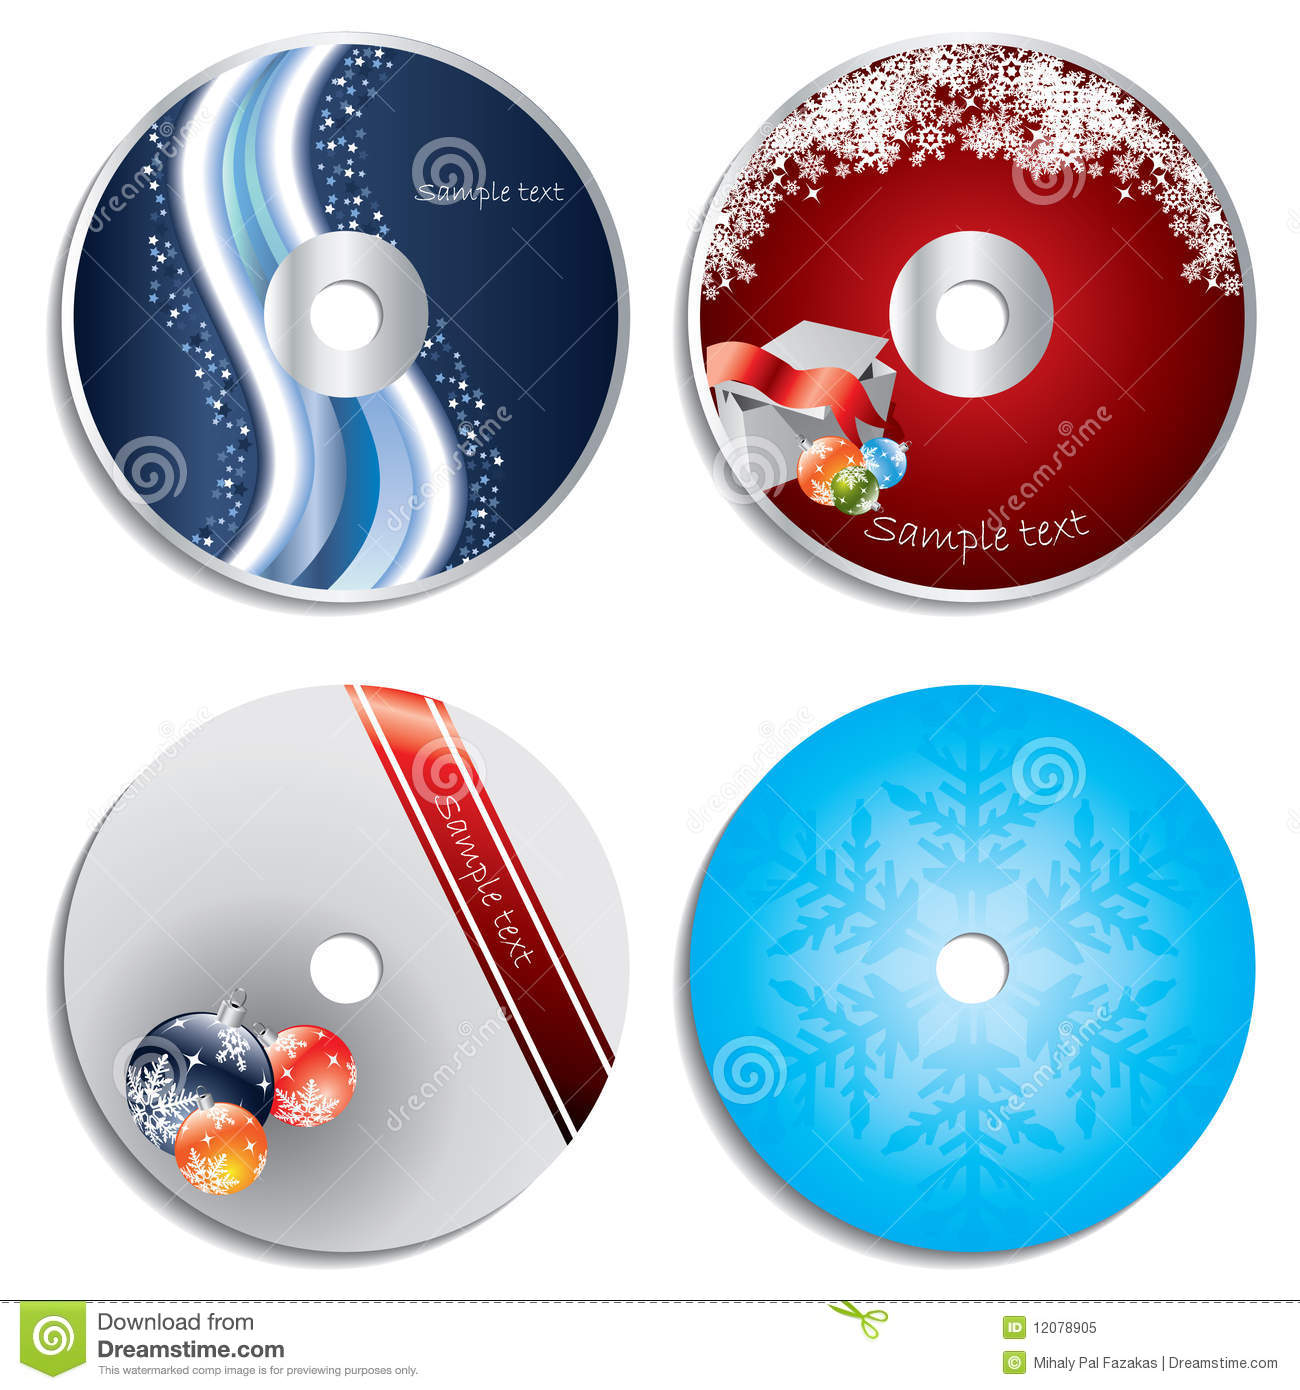 Cd   Dvd Label Christmas Designs Royalty Free Stock Photo   Image